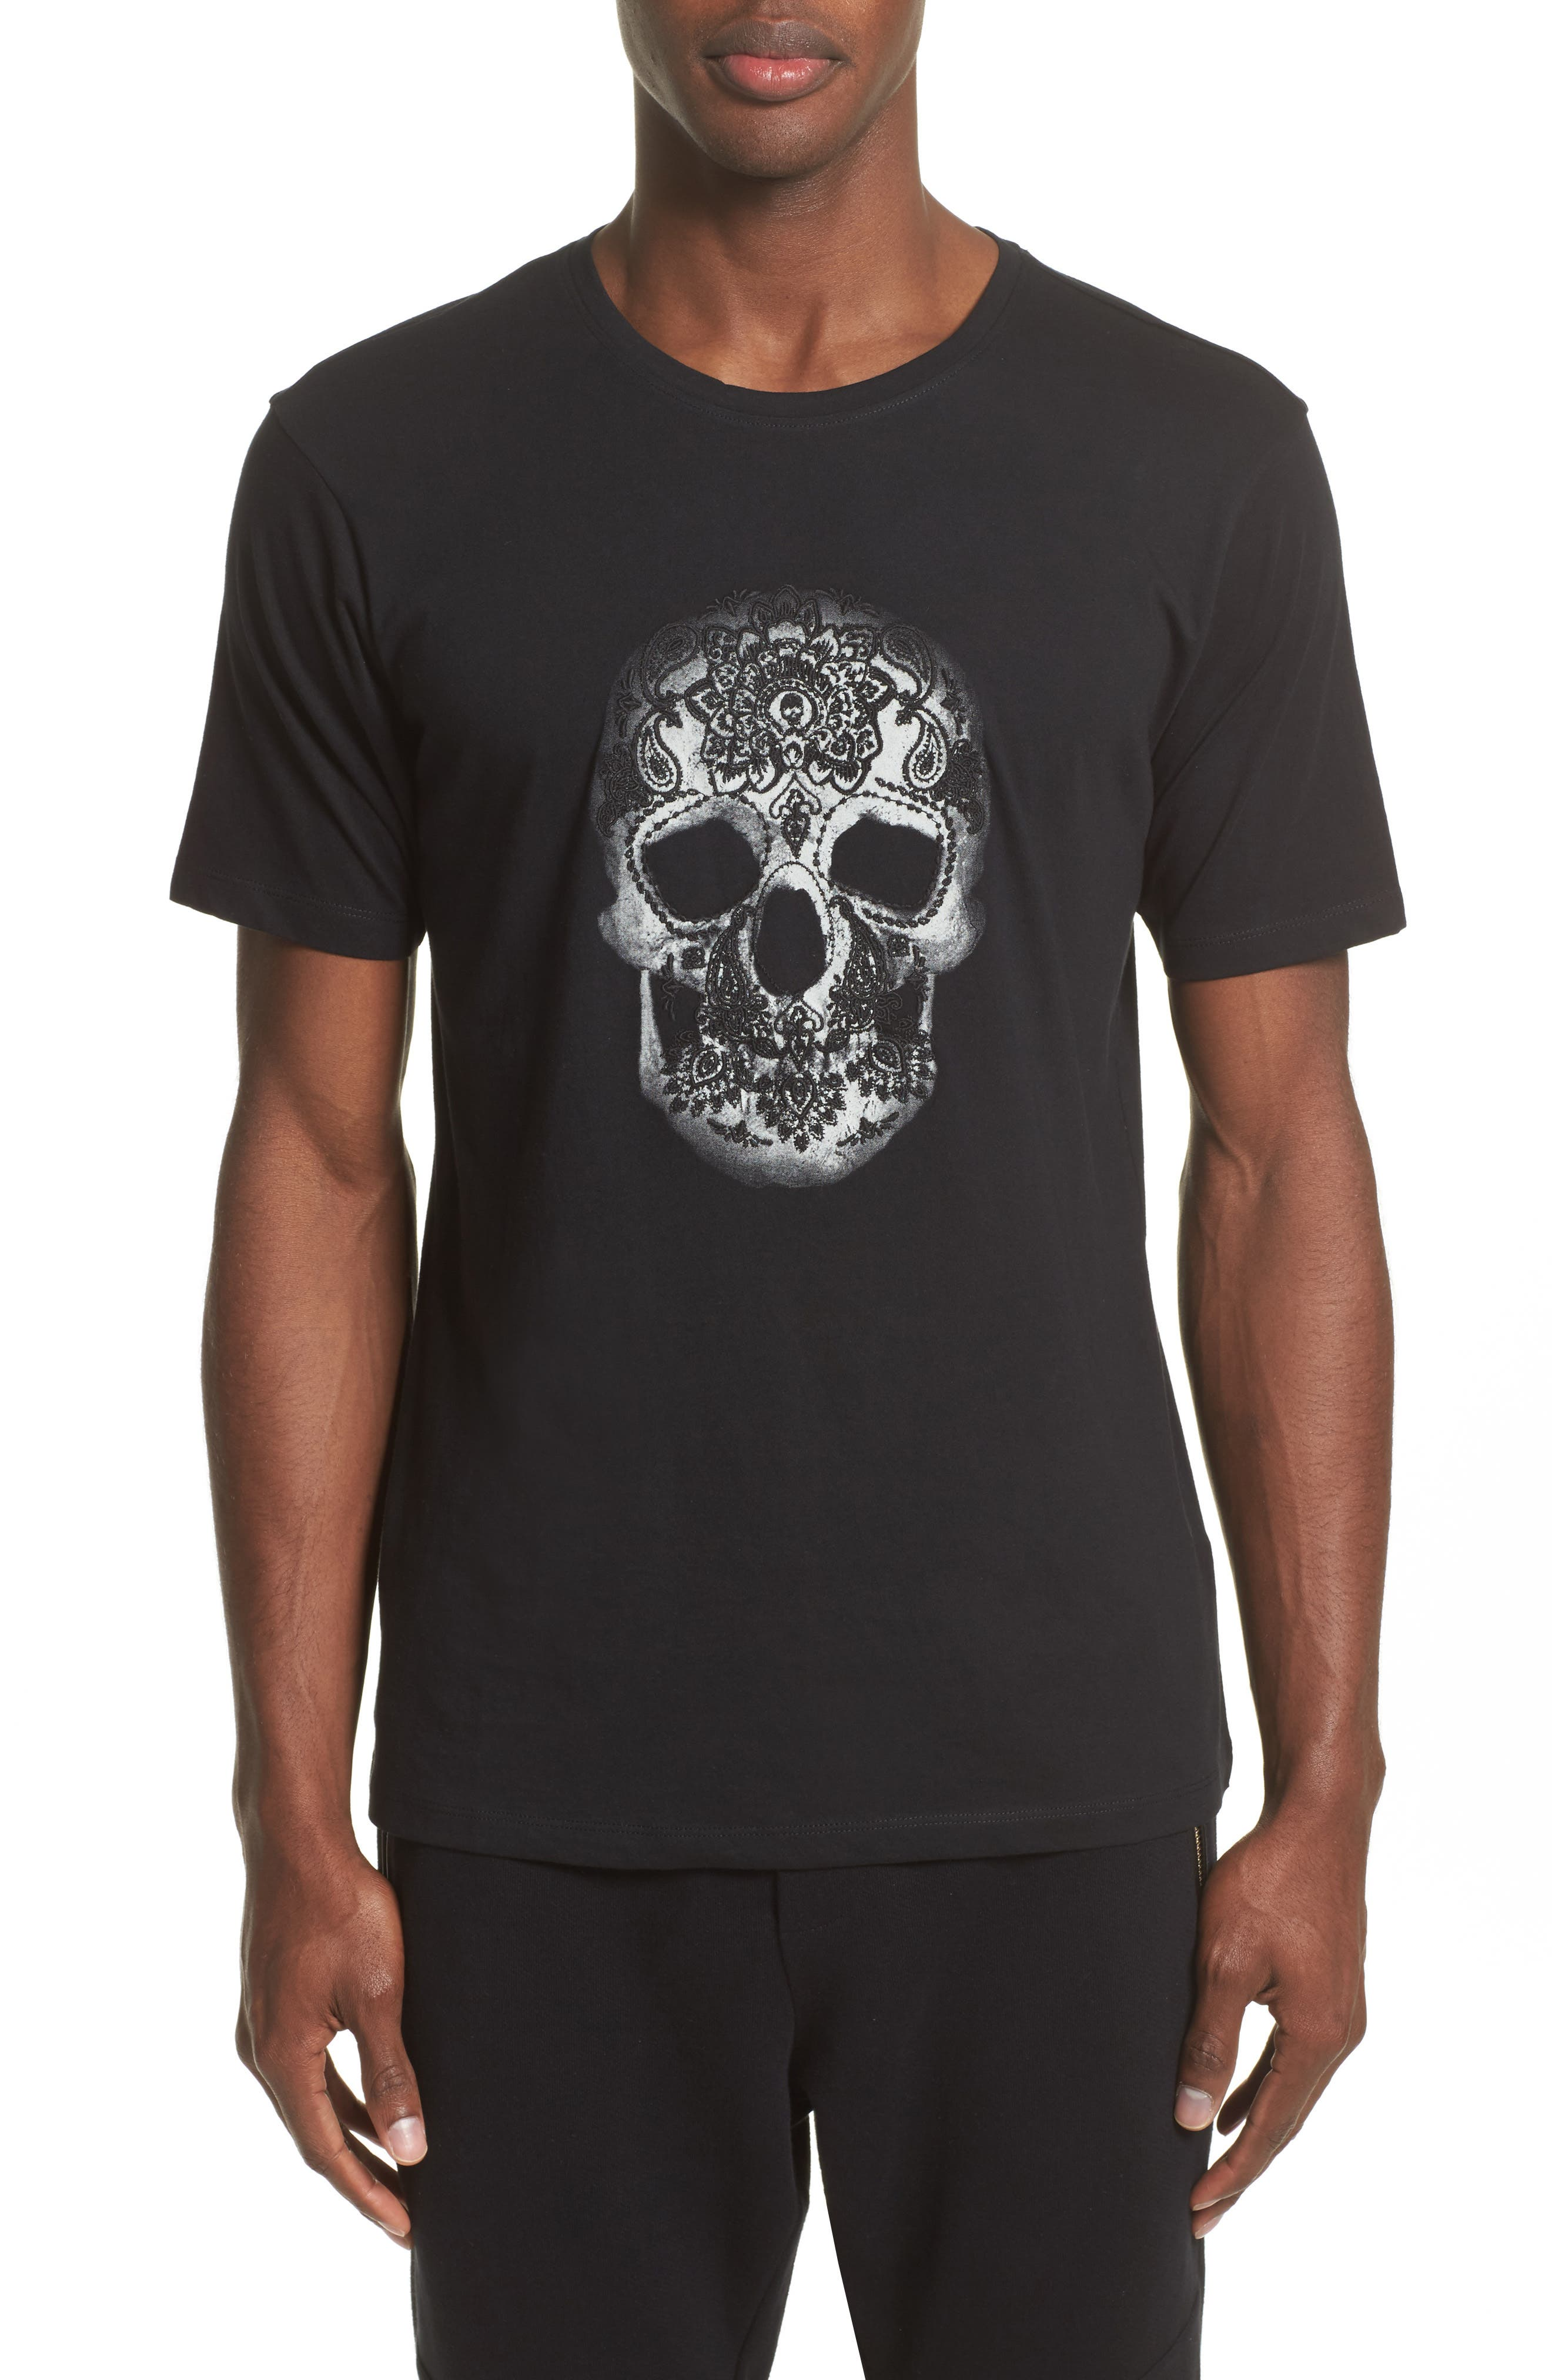 The Kooples Embroidered Skull Graphic T-Shirt